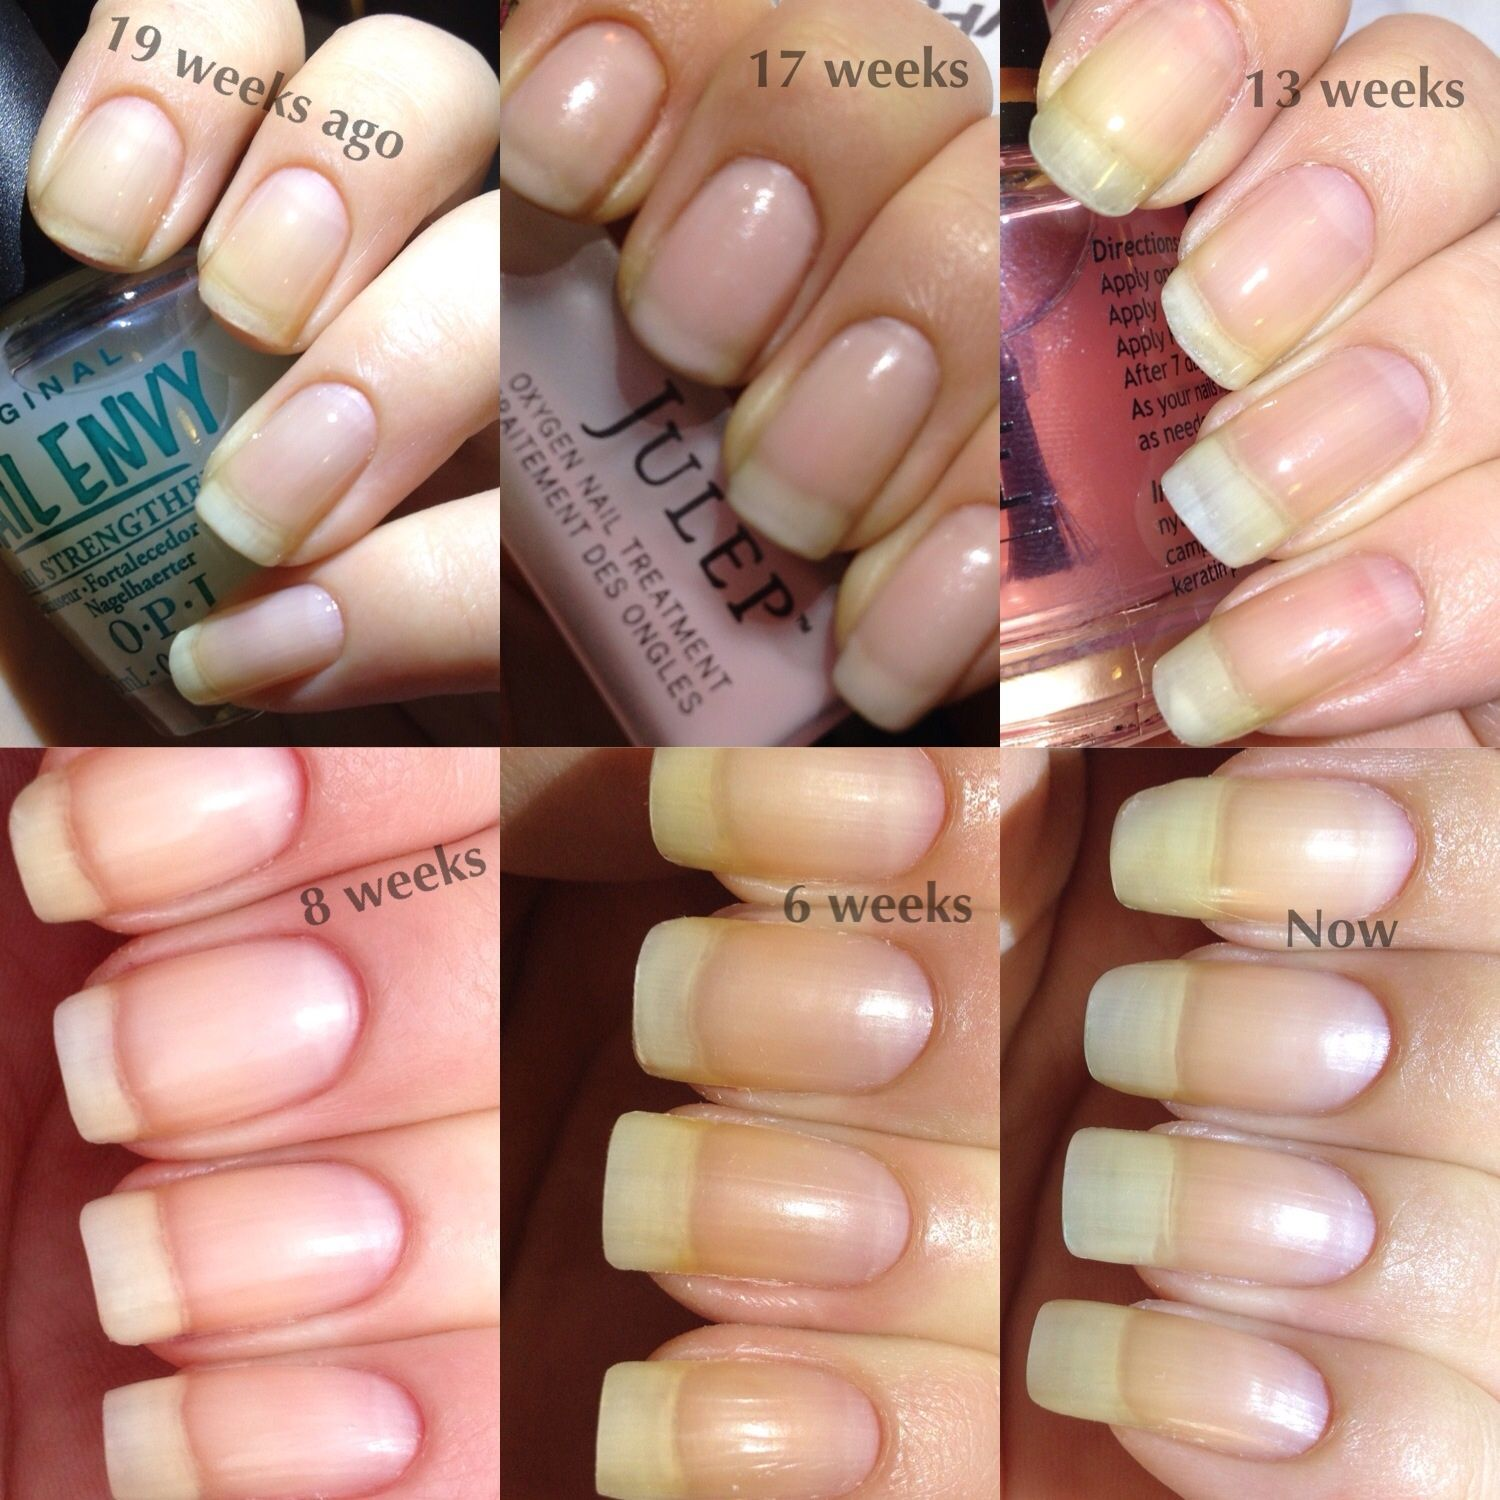 My Nail Journey Growing Natural Nails after damage from Acrylics